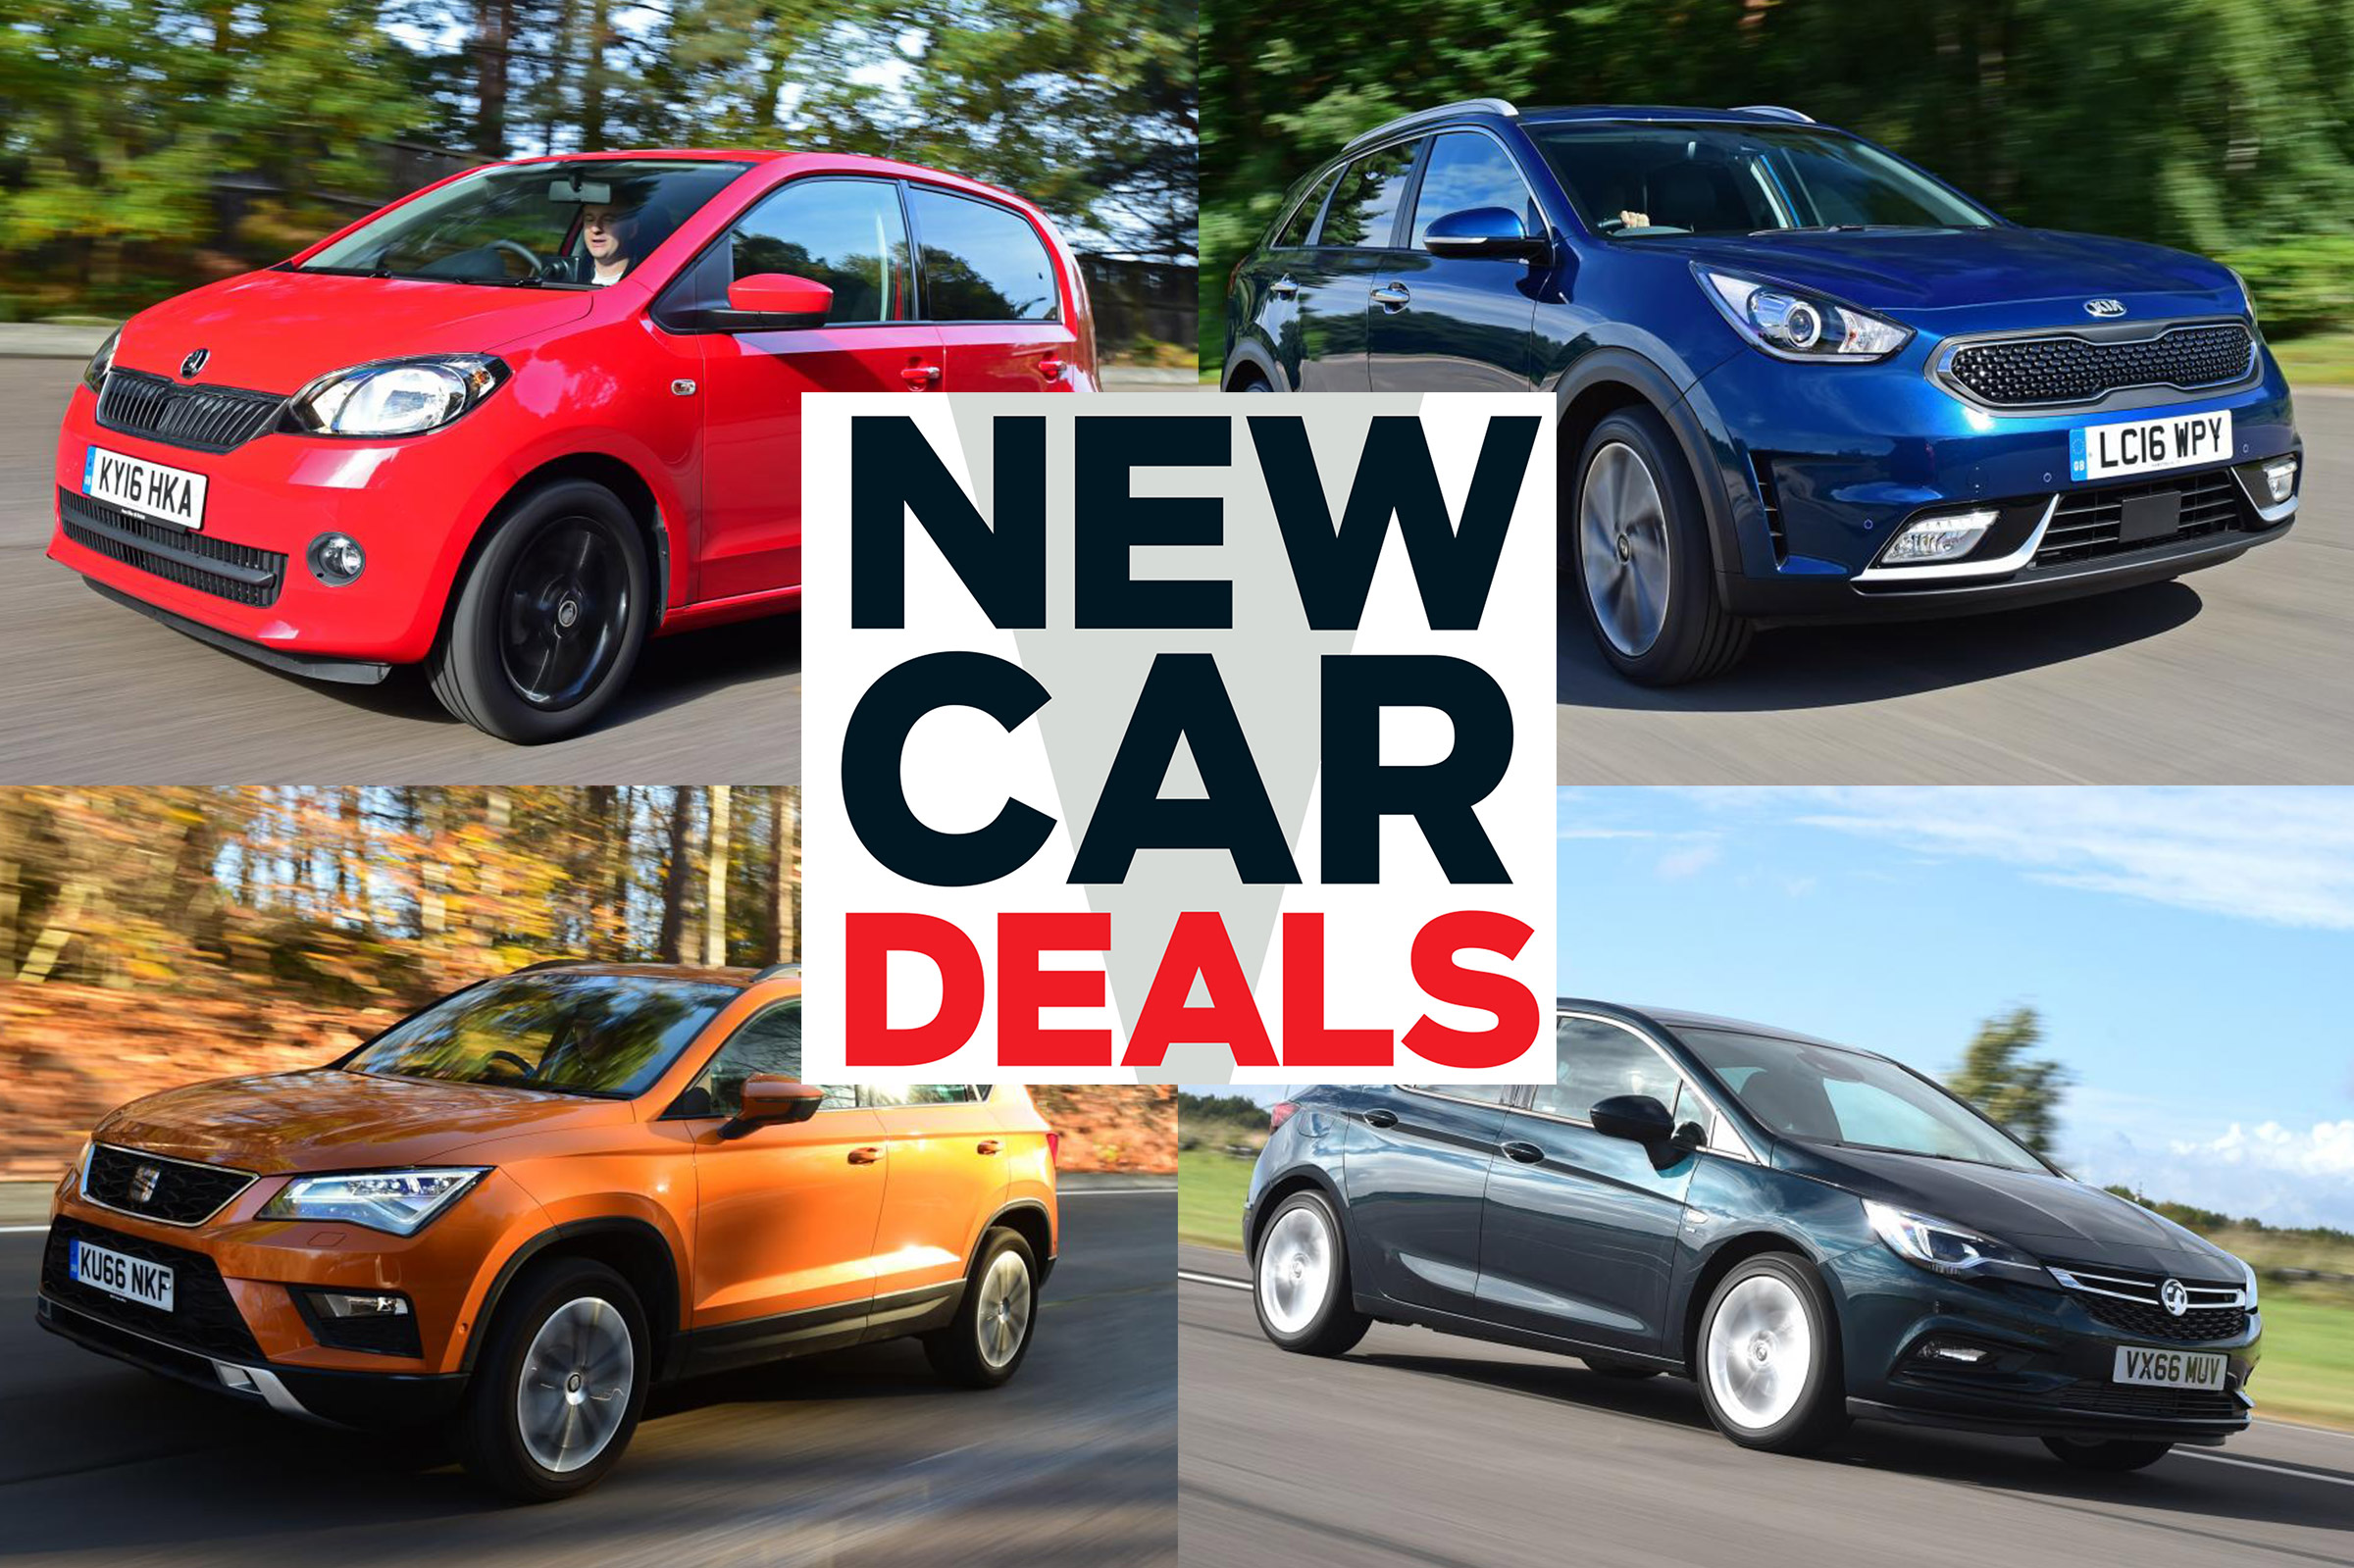 U.S. News & World Report Identifies the 9 Best Cars to Buy Now